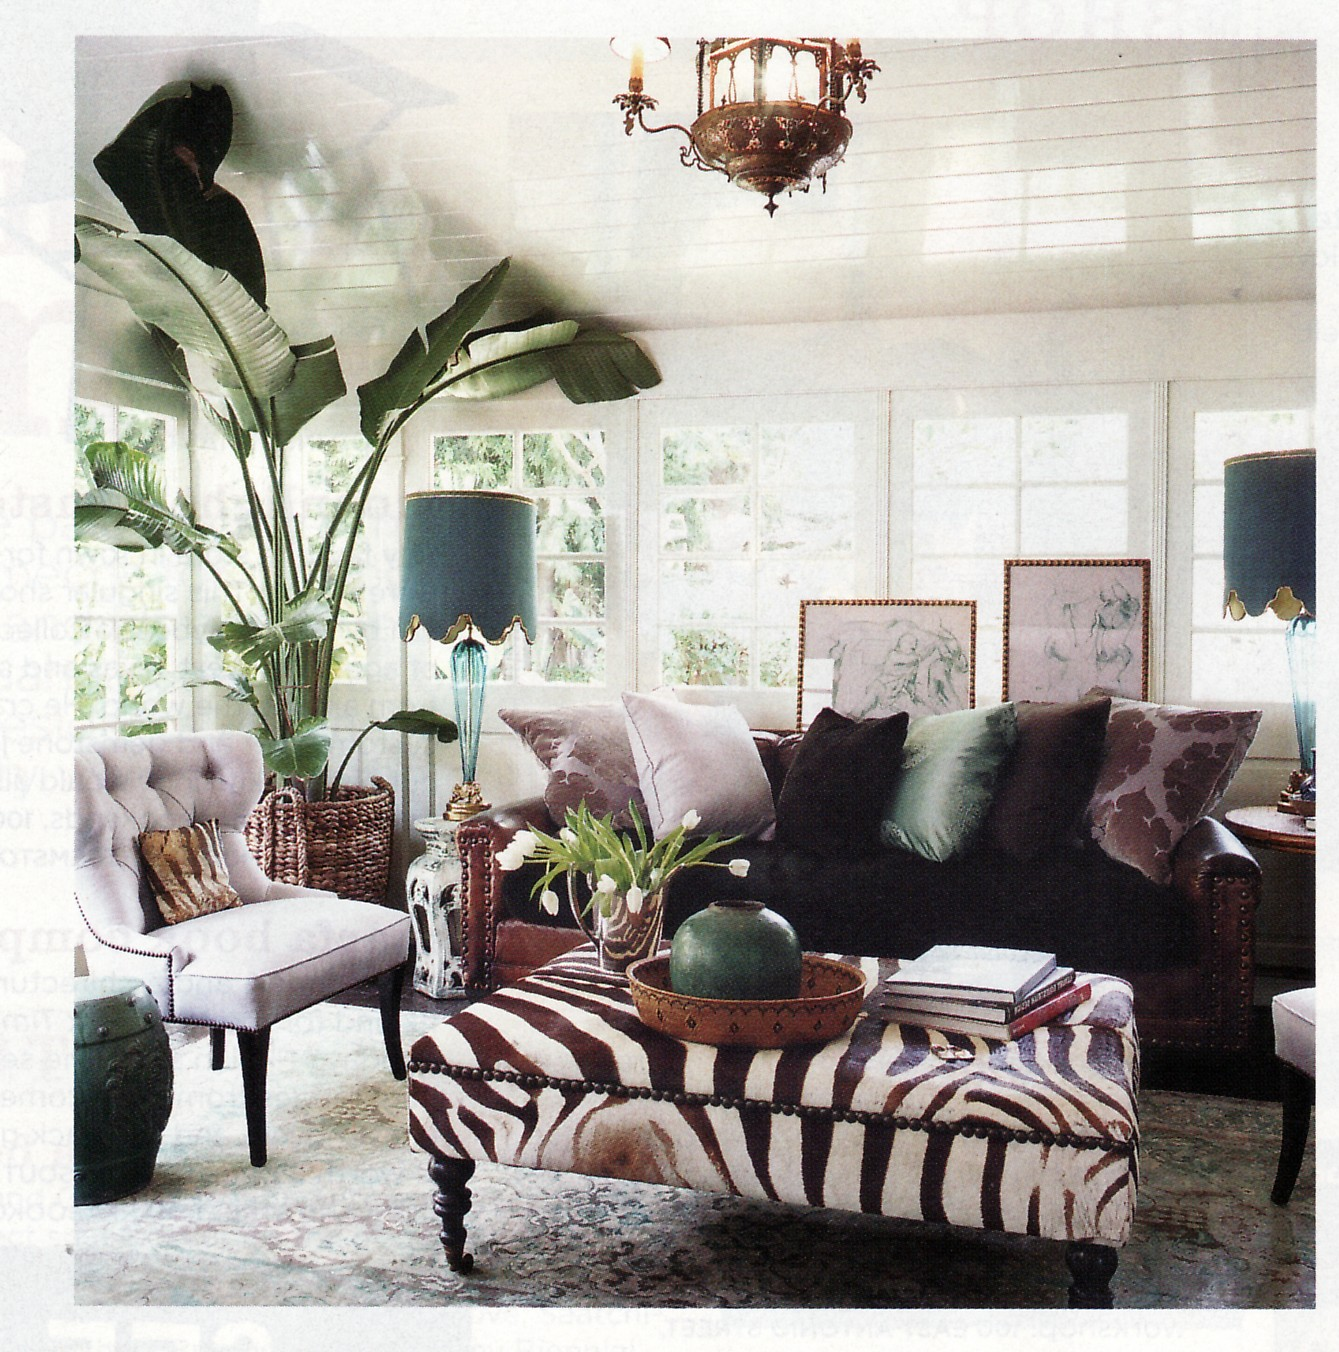 Rachel hazelton interior design style file boho chic for Animal print living room decorating ideas